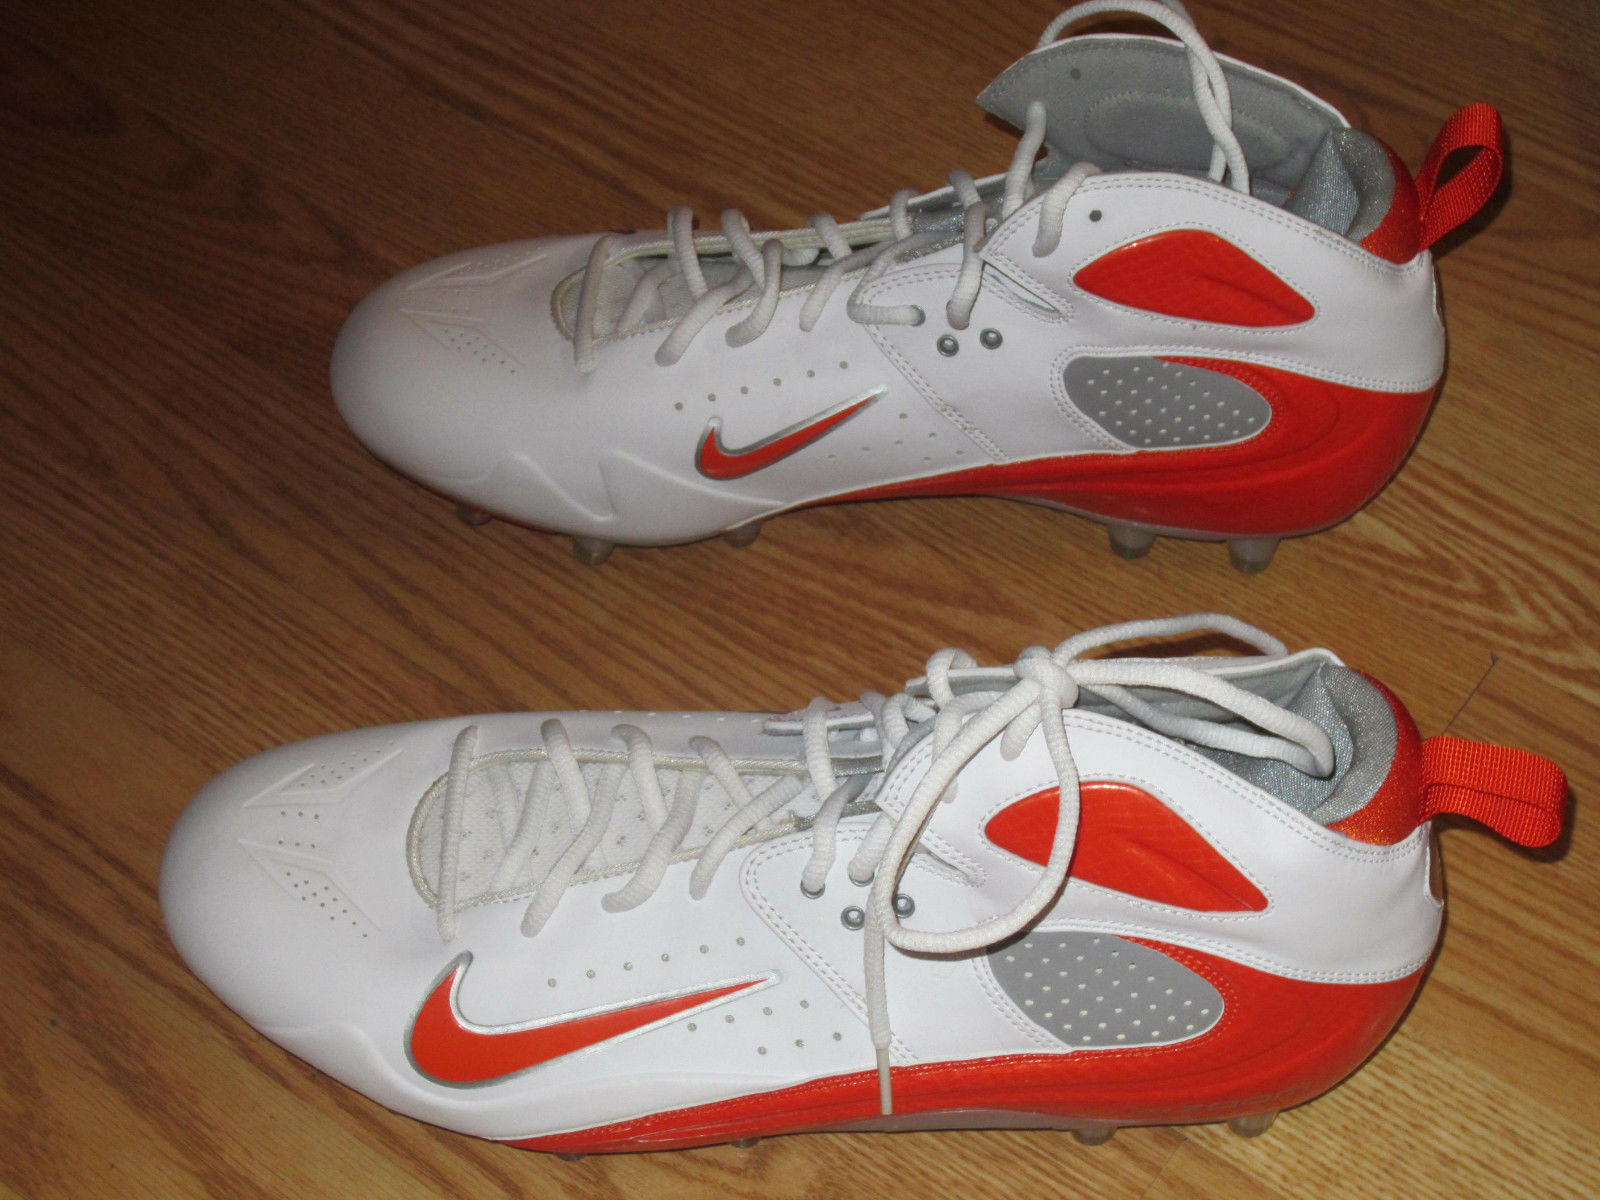 Nike Nike Nike Zoom sneakers white w/ orange swoosh 13.5 football baseball golf   CLEATS d7d9ca